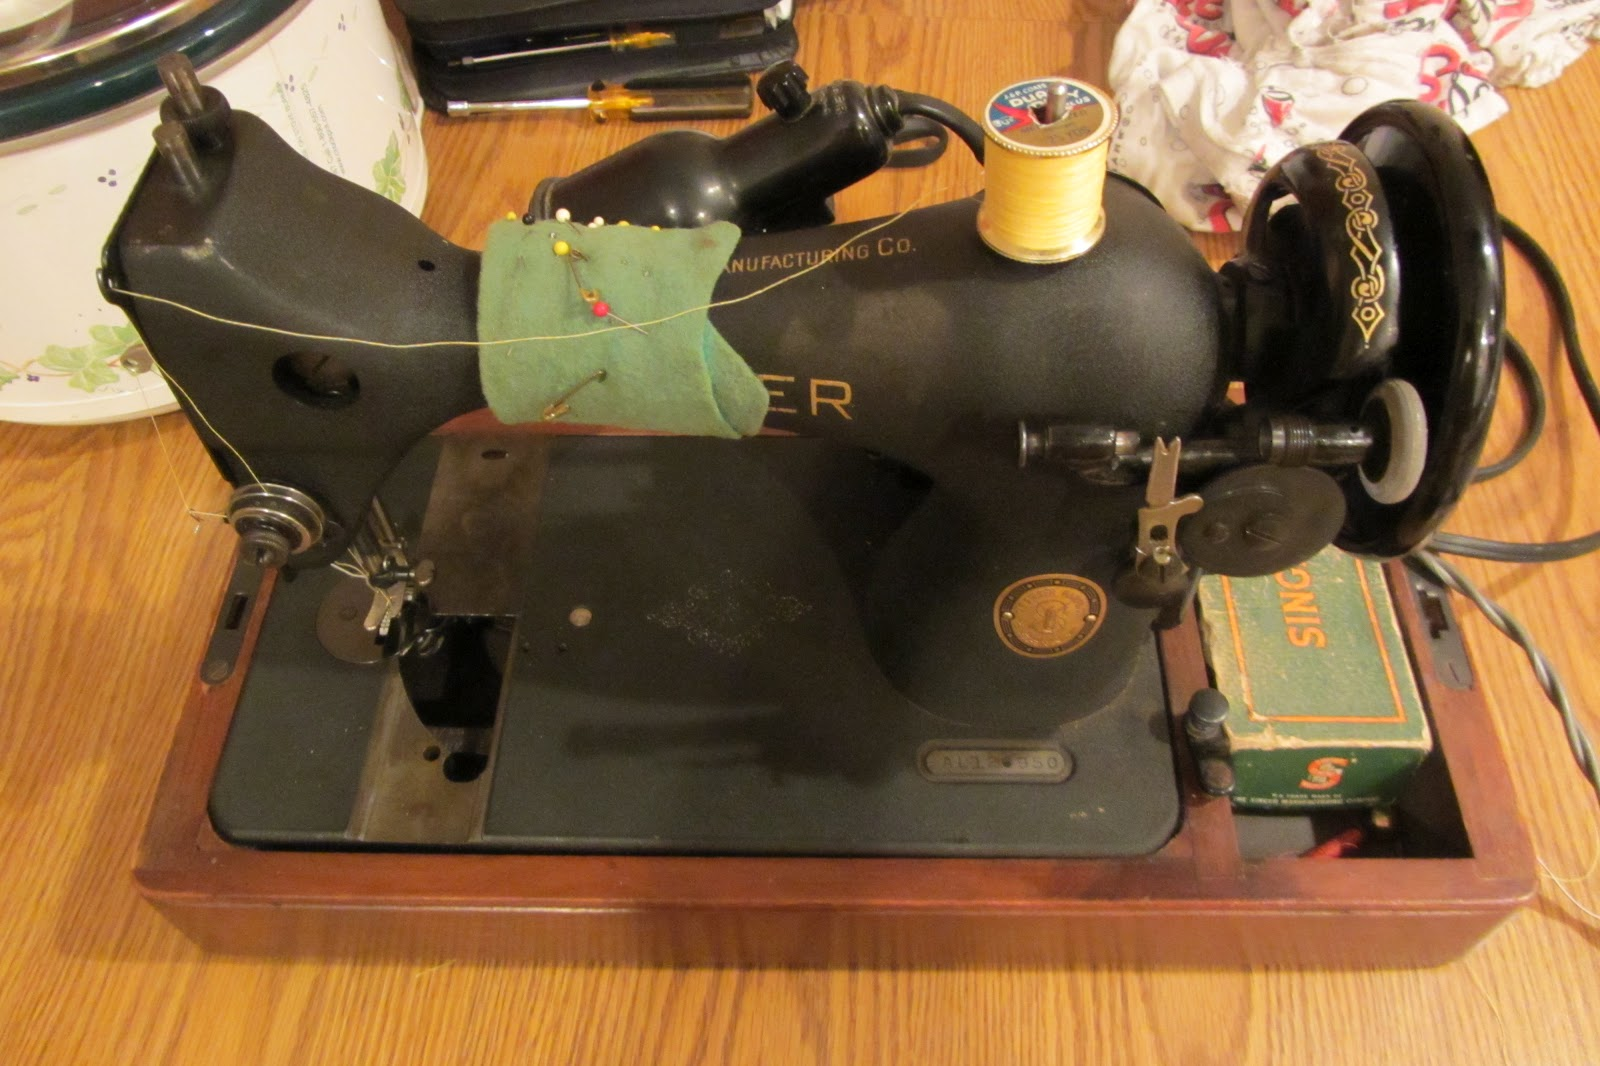 My Newest Sewing Machine Is A 1960s Montgomery Ward Urr 273 Unit That Was Made In An By Company Called Hy This Very Ful But